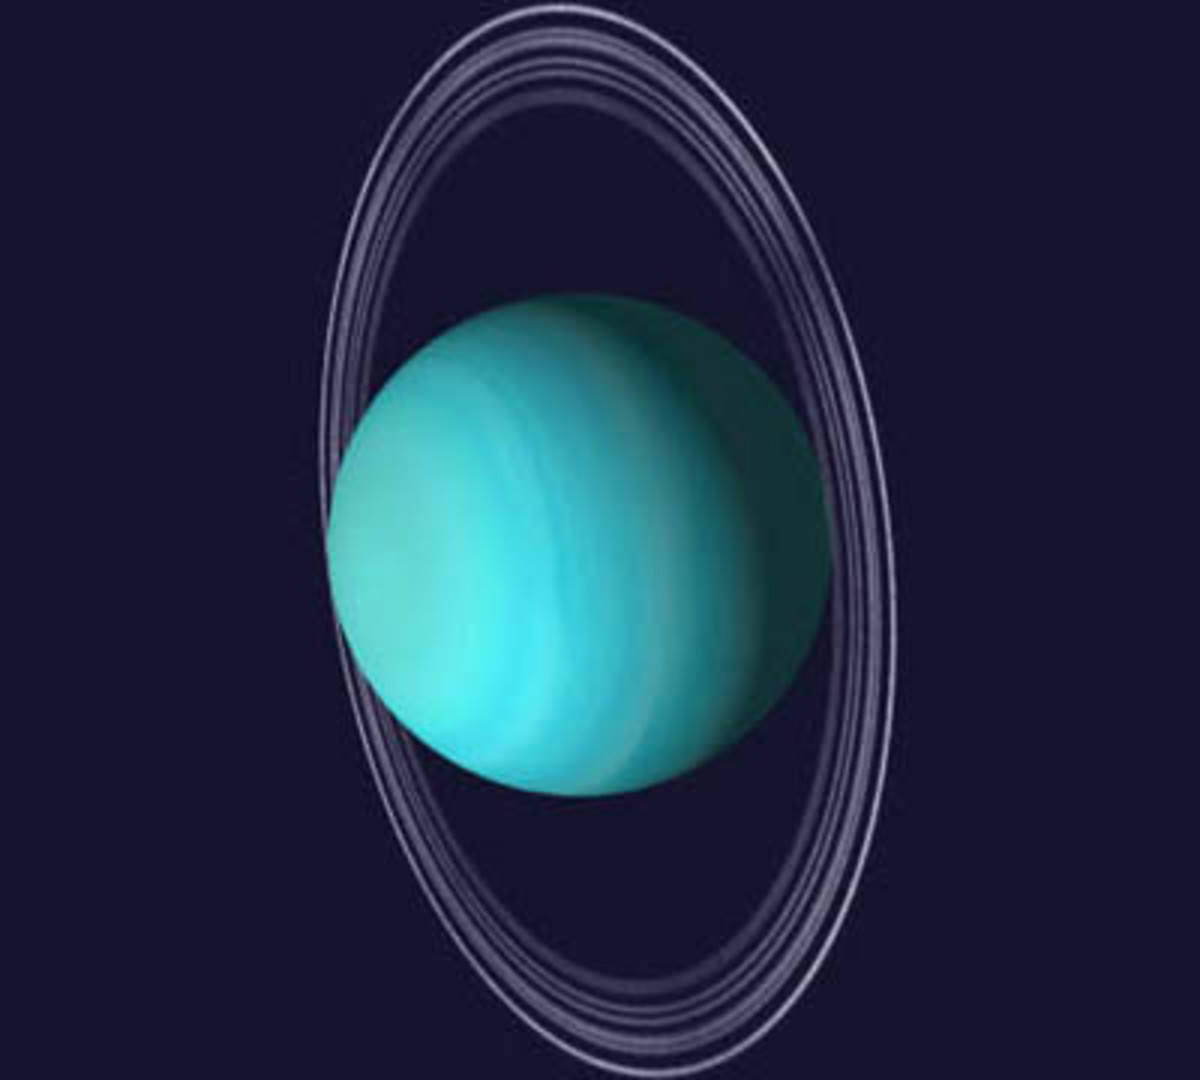 Uranus, showing its rings.